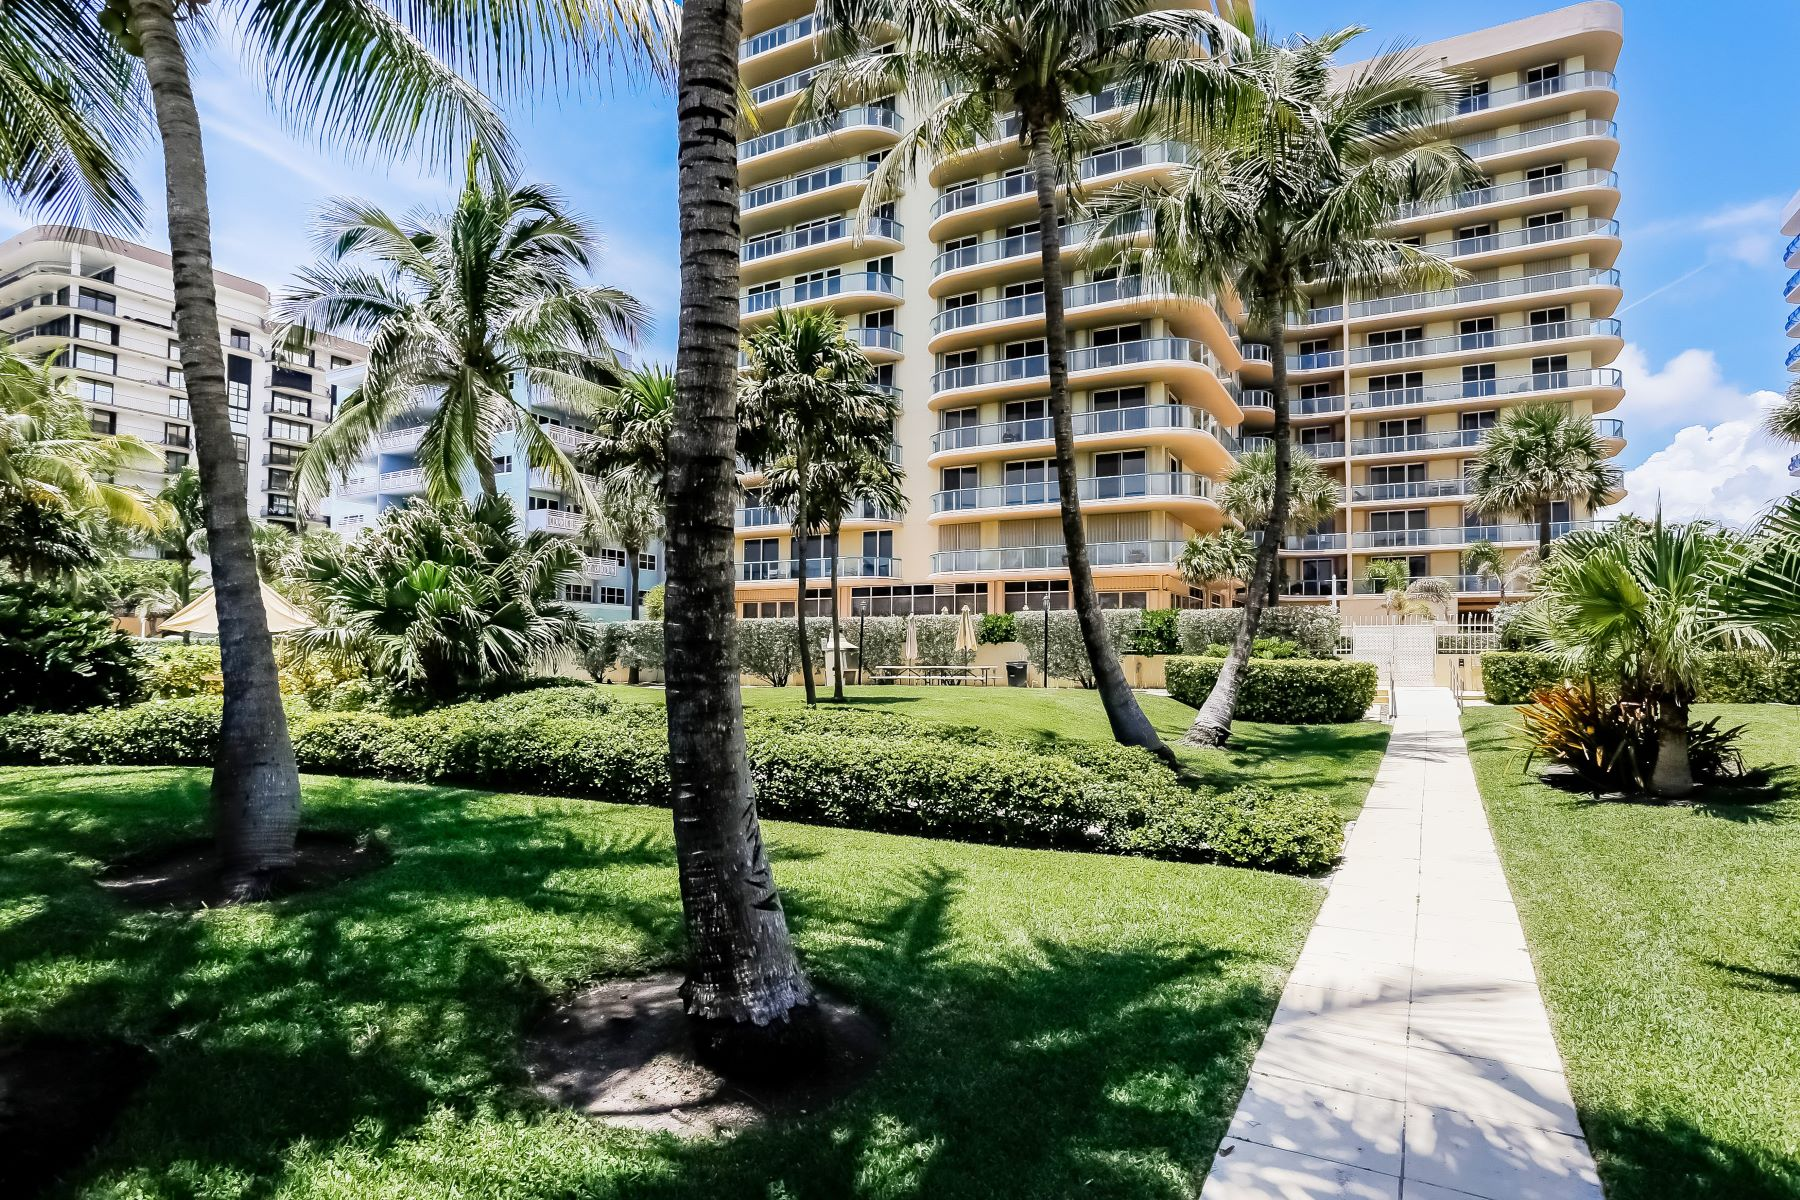 Condominium for Sale at 8855 Collins Ave #4J 8855 Collins Ave 4J Surfside, Florida 33154 United States